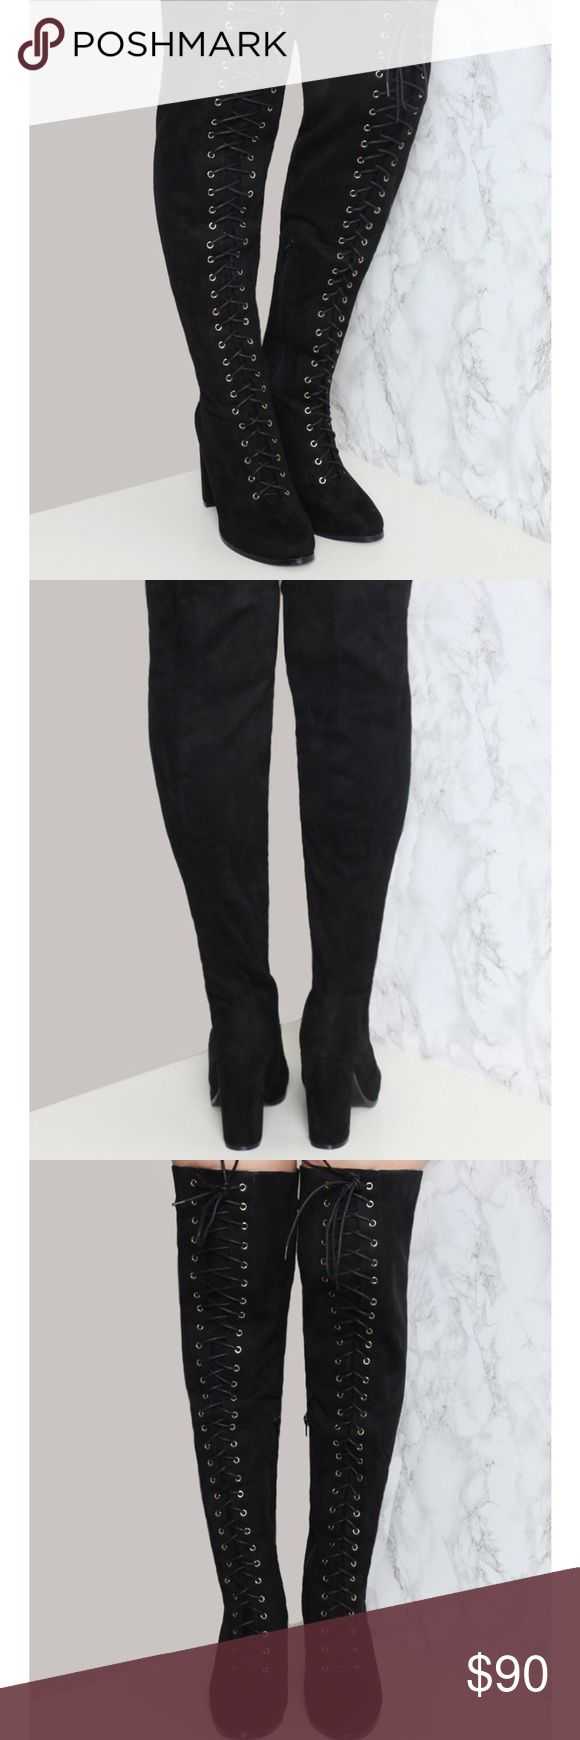 Black thigh high boots Worn once, great condition - the brand is N.Y.L.A. but they were bought on the gypsy warrior website gypsy warrior Shoes Over the Knee Boots